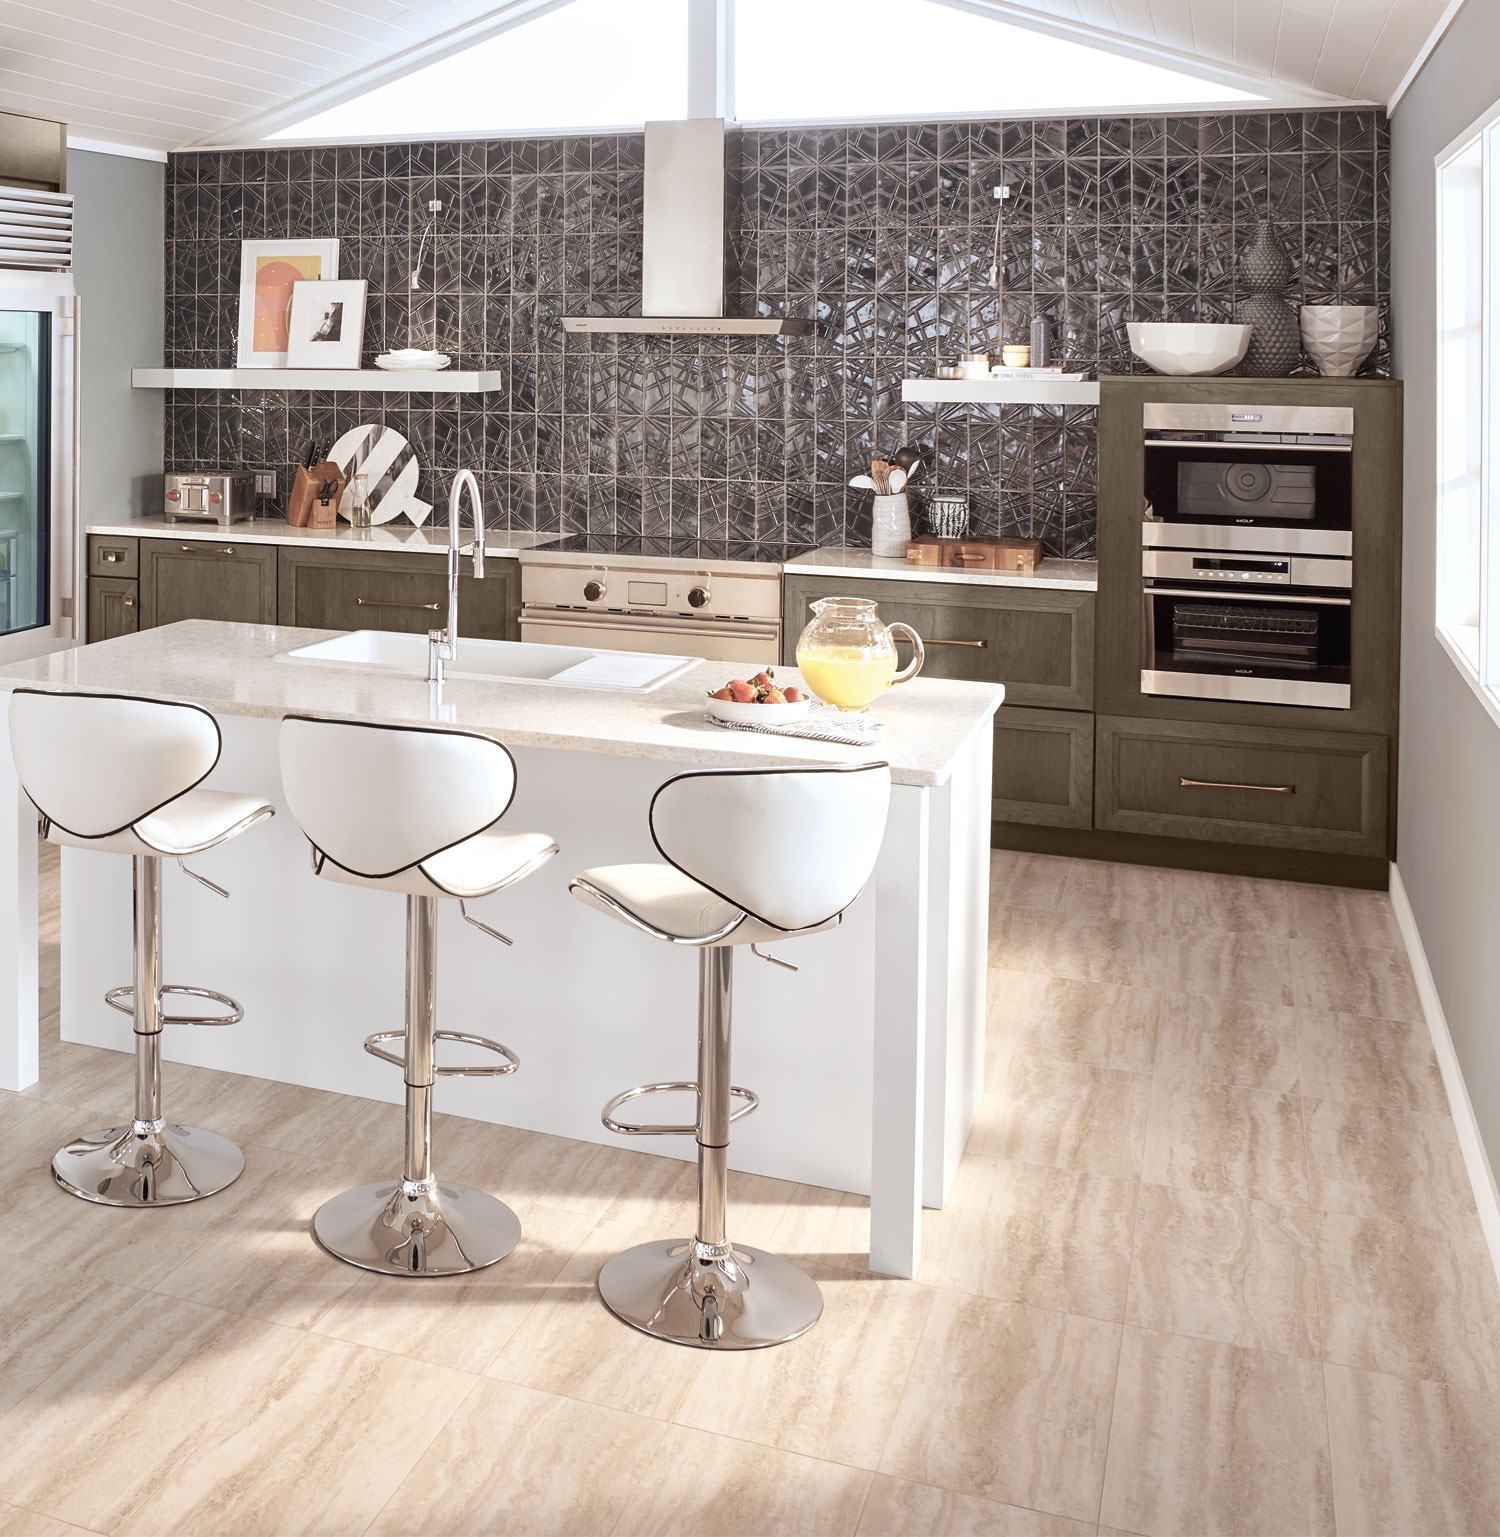 Delano-Kitchen-Small.jpg